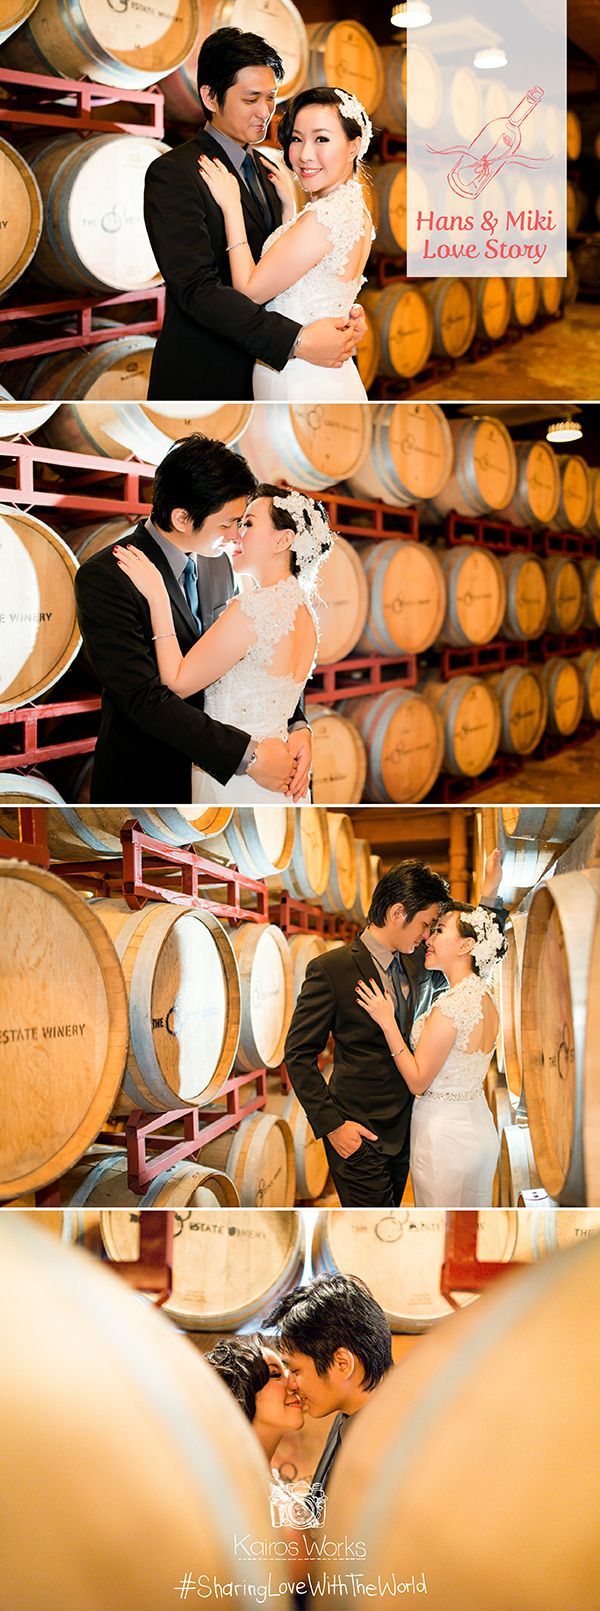 They love wines, and to make their session more personal, I suggested them to do their session at a wine storehouse, and they agreed without thinking twice. This is why I adore my Job, I can be a witness of how beautiful love can be, and have the privilege to capture it's beauty on frames. #SharingLoveWithTheWorld